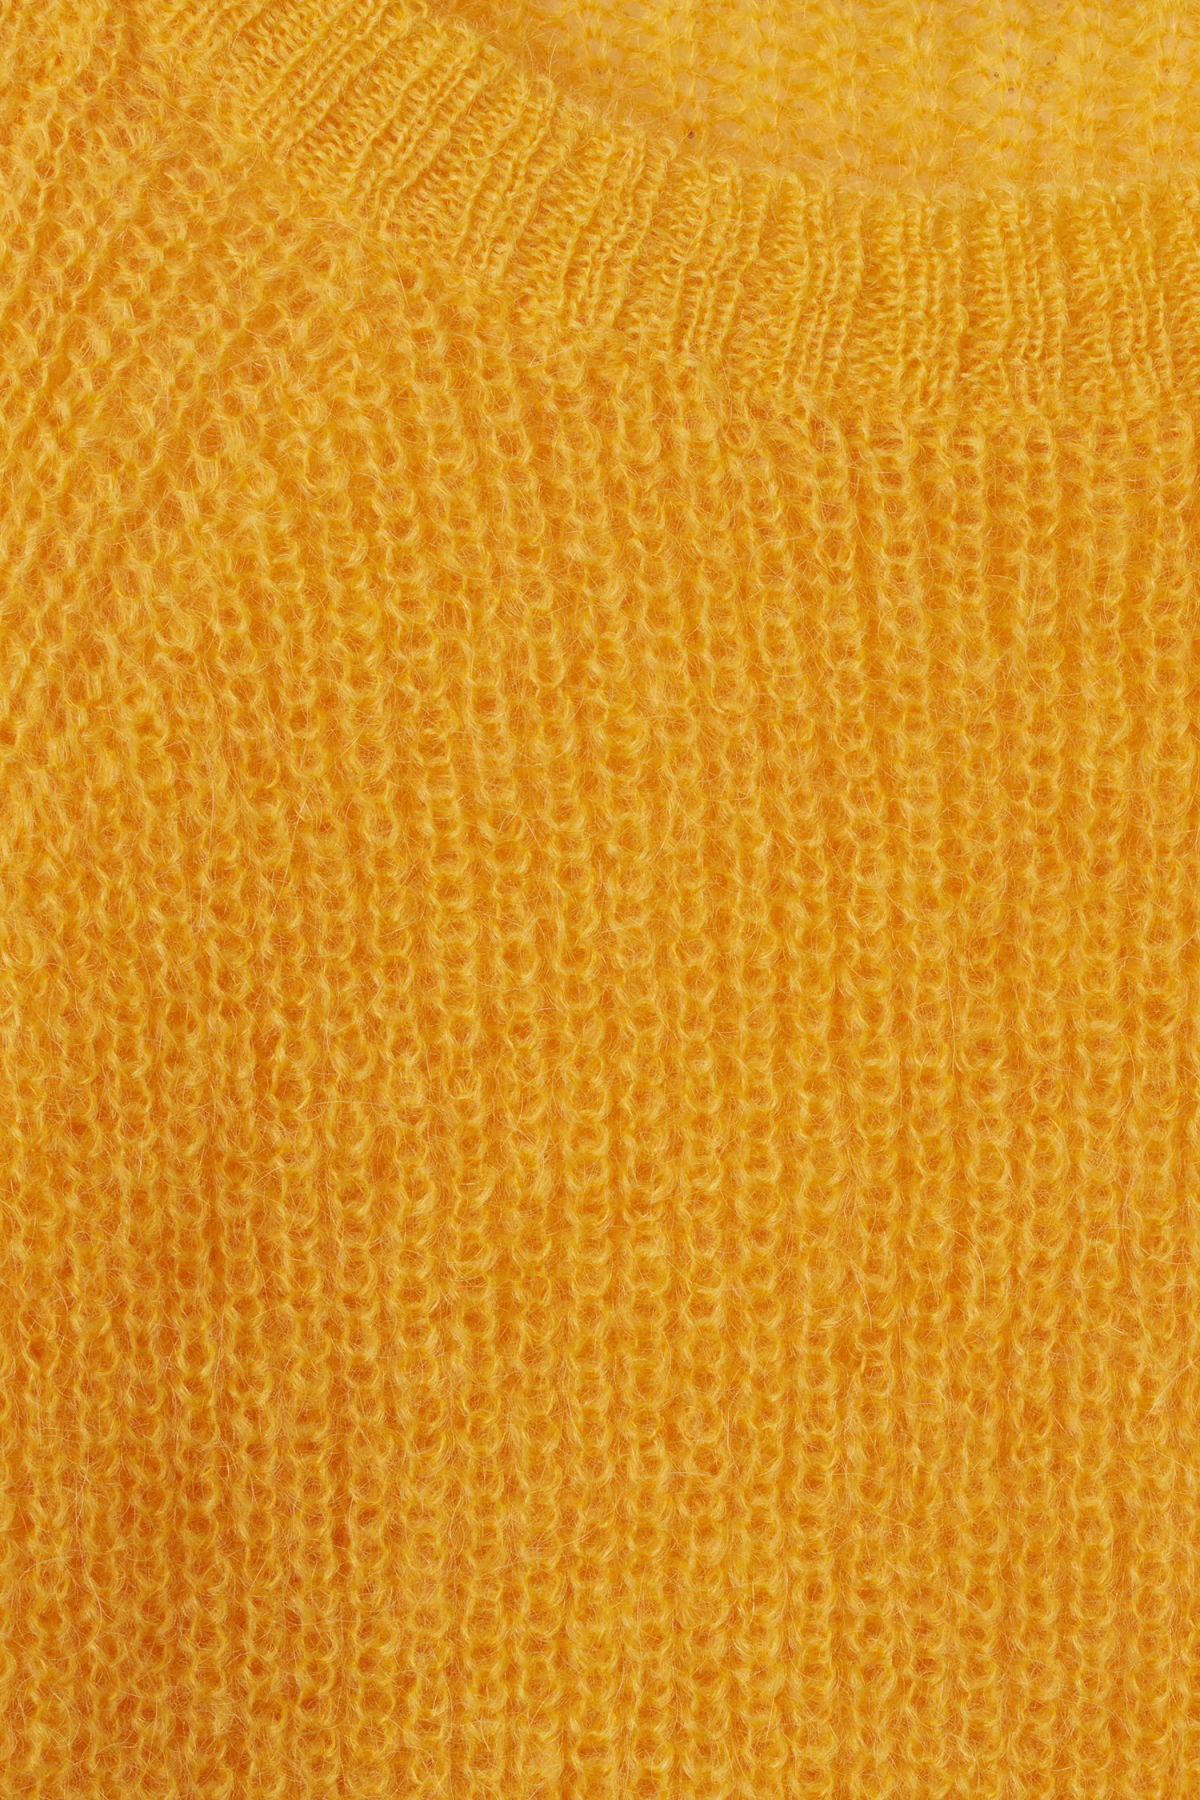 Detailed image of Weekday joni sweater in yellow